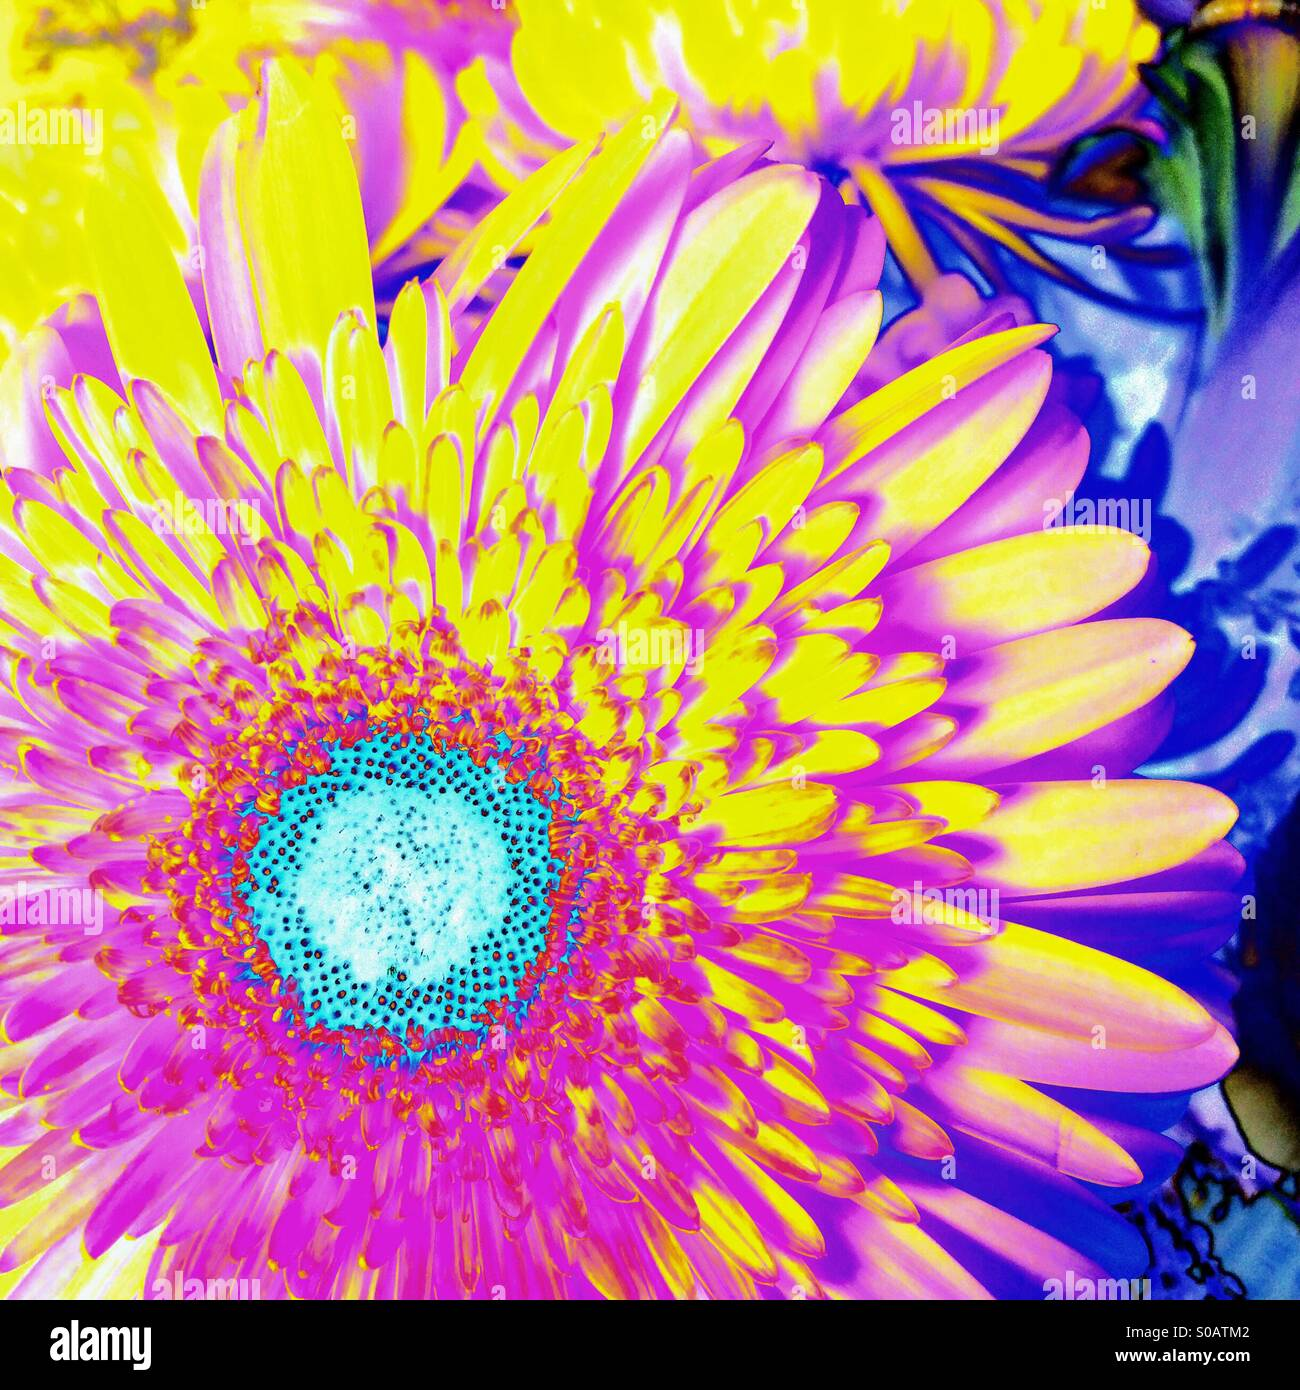 Daisy type flower stock photos daisy type flower stock images alamy brightly psychedelic coloured daisy type flower stock image izmirmasajfo